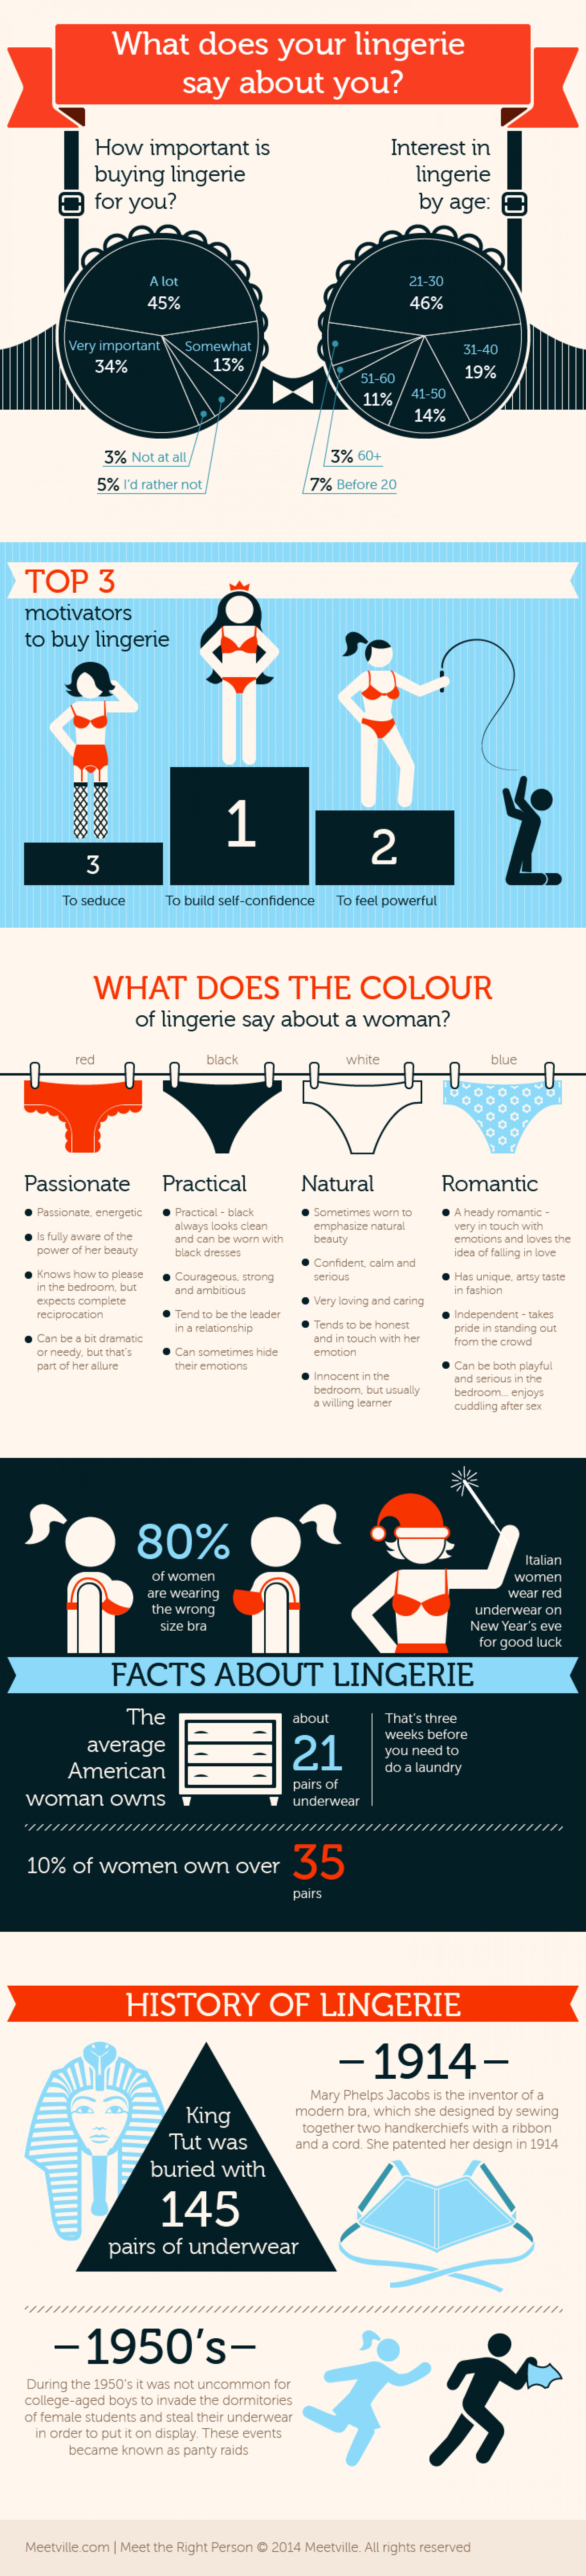 What does your lingerie say about you? Infographic